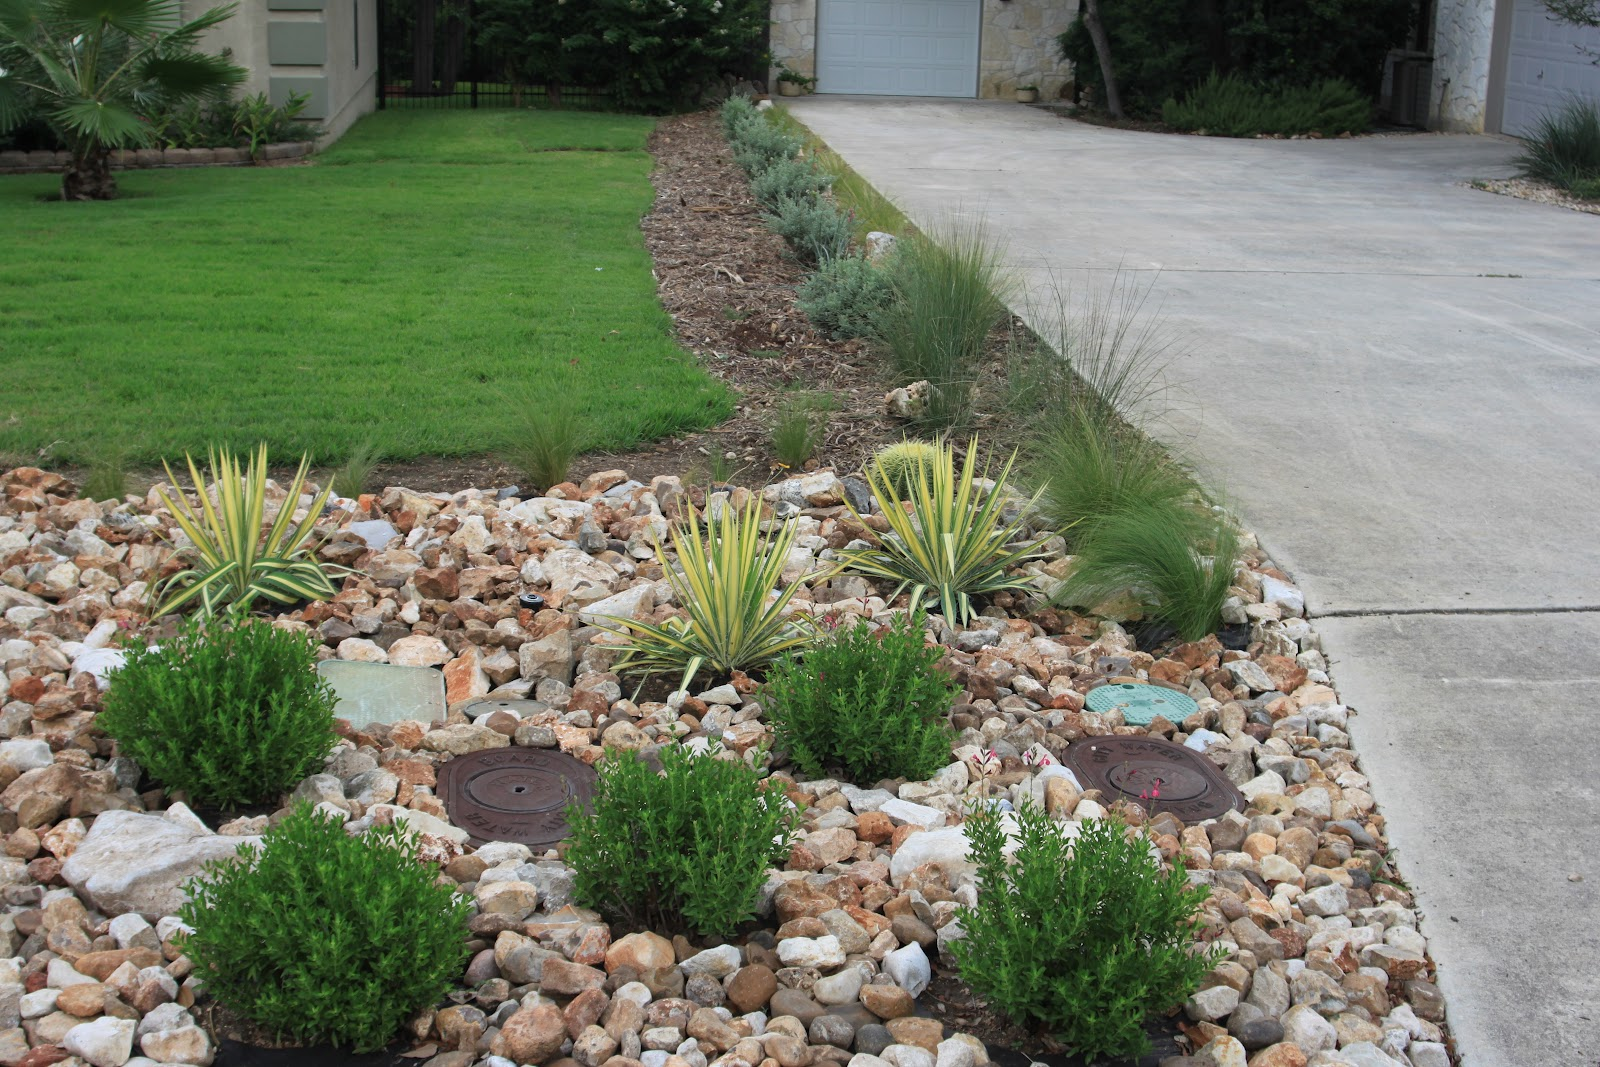 Willing landscape front lawn landscaping ideas using for Landscaping ideas for small areas